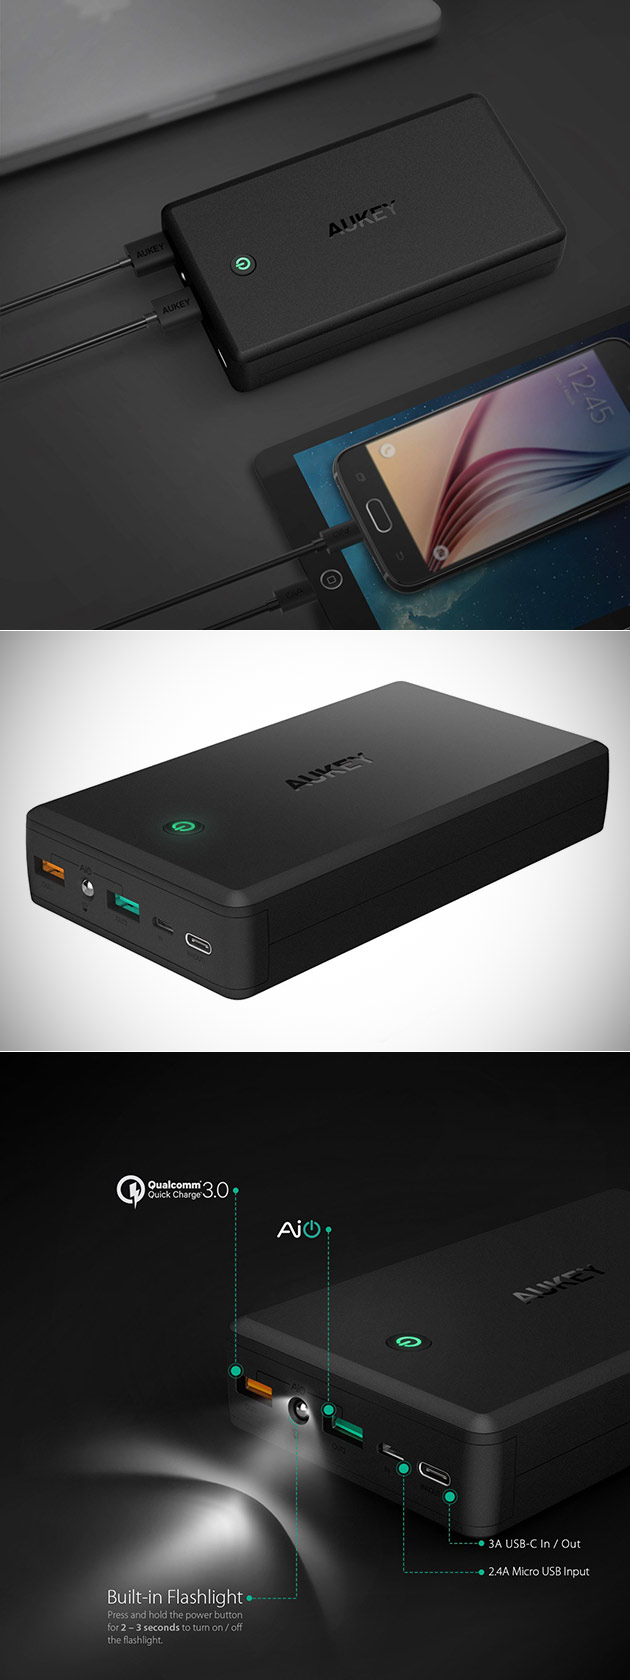 Aukey 30,000mAh Portable Charger